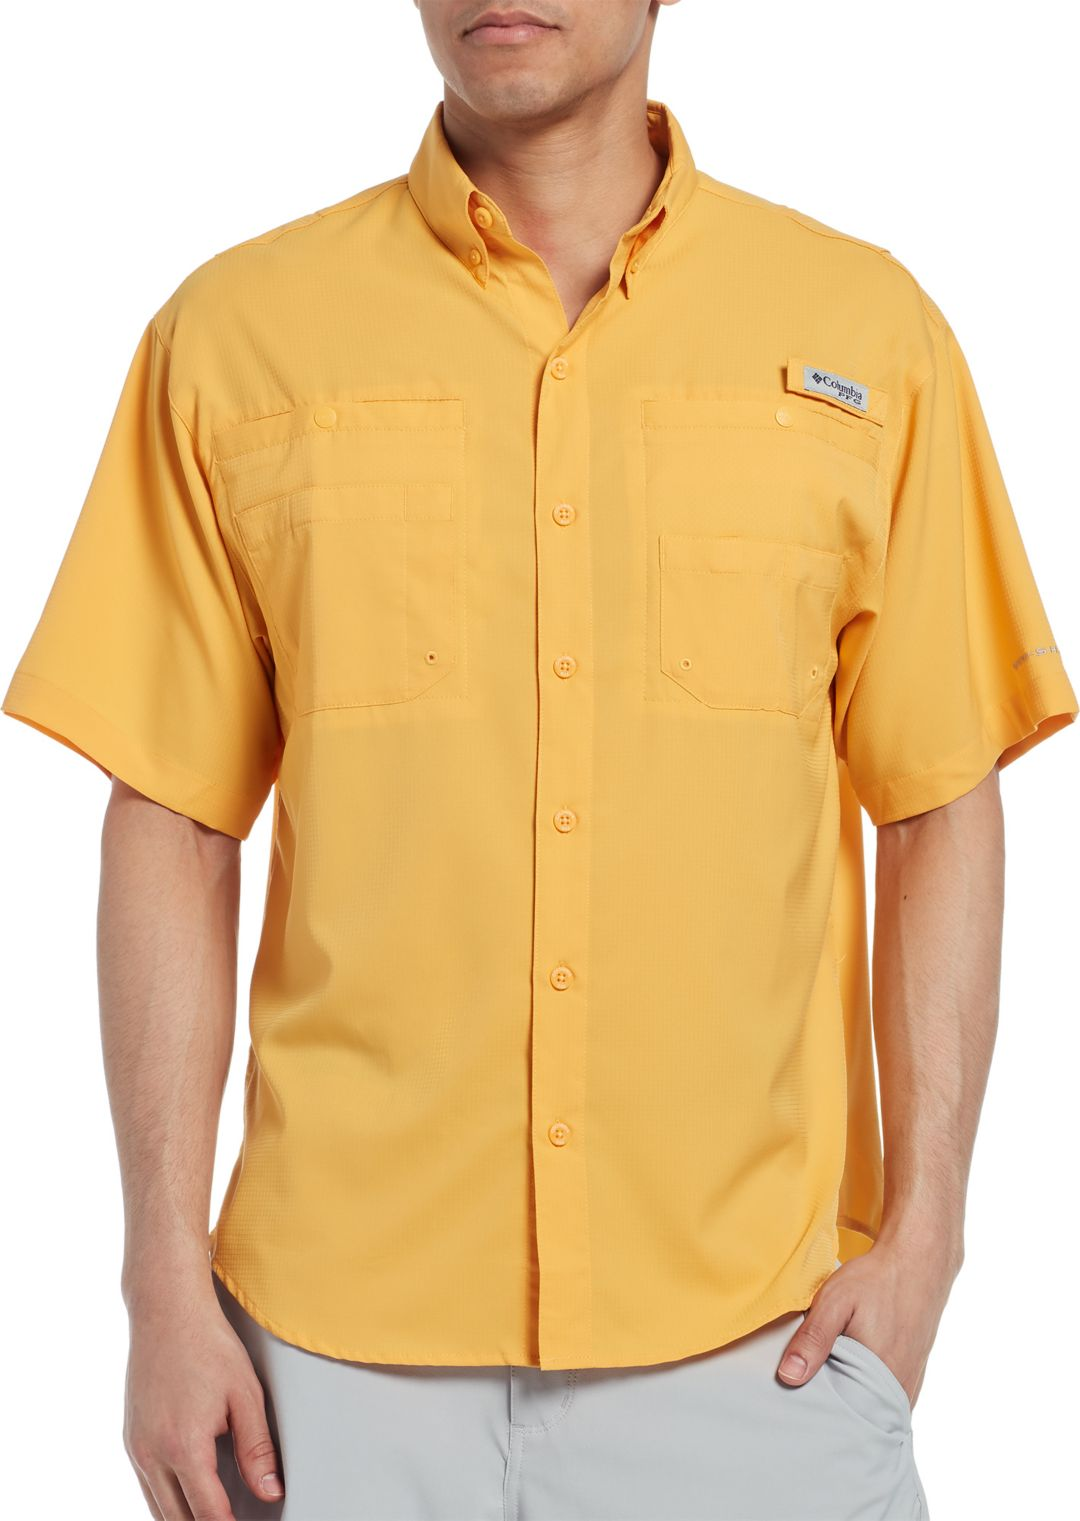 e5b2c6d5978 Columbia Men's PFG Tamiami II Shirt | DICK'S Sporting Goods